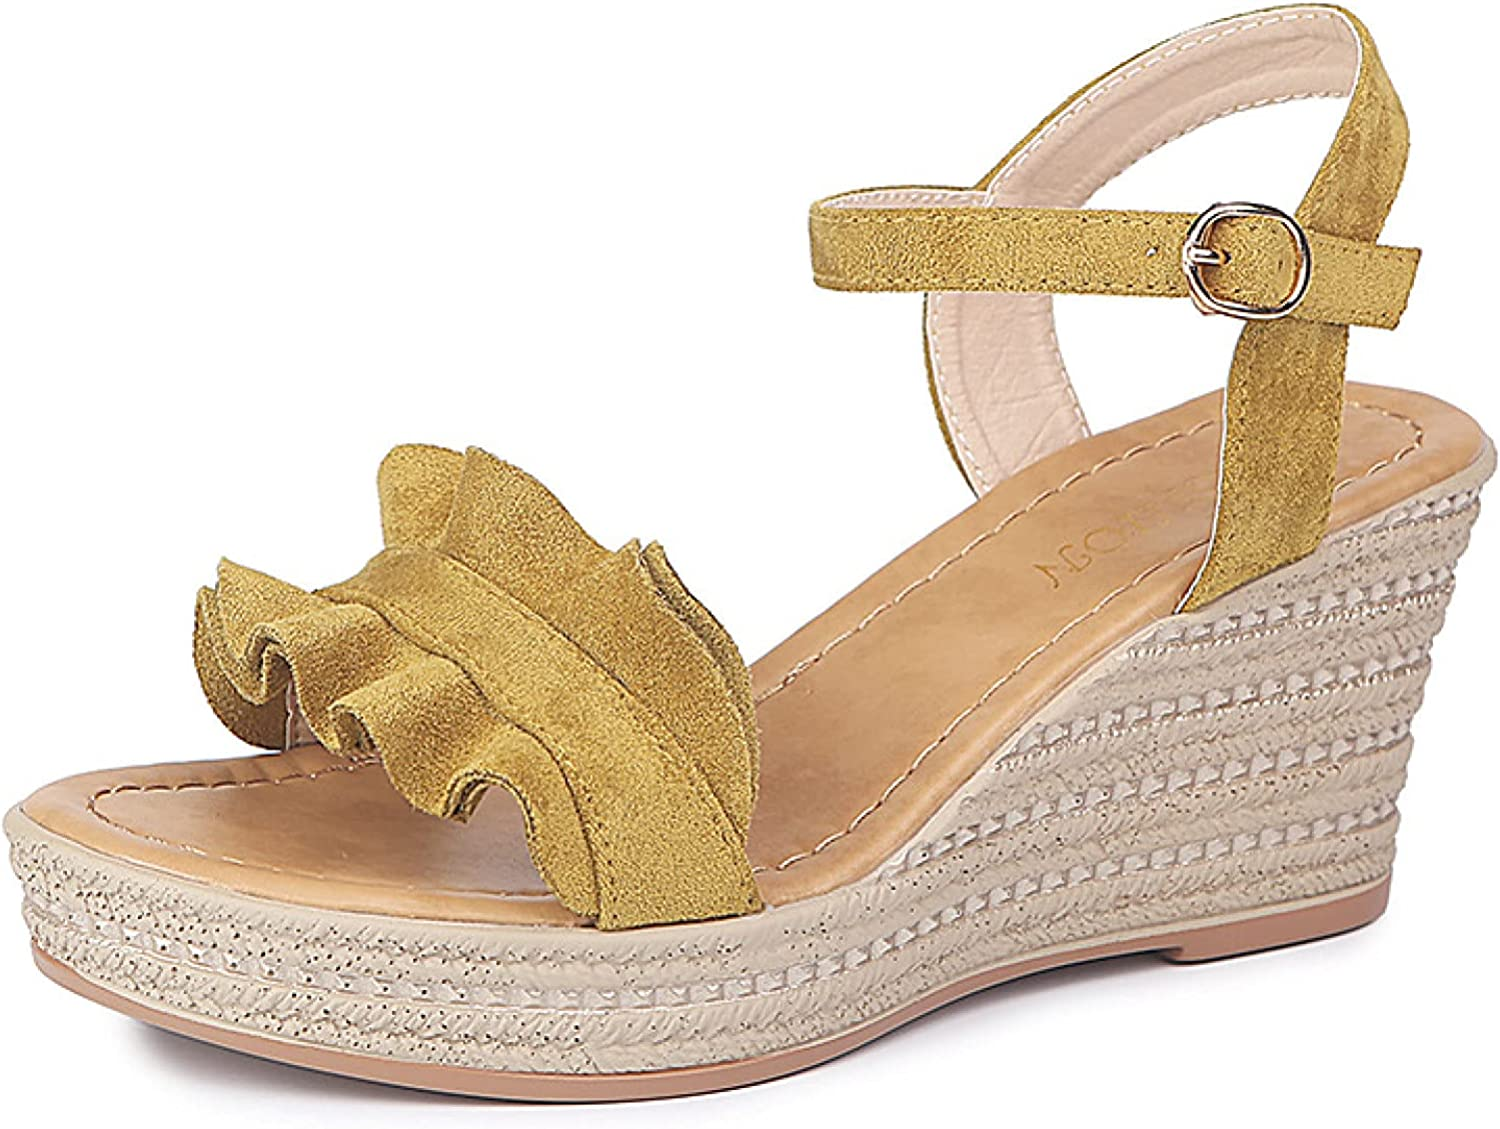 Women's Wedges Ankle Max 81% OFF Buckle Strap Sandals Chunky safety Heel Ru Fashion